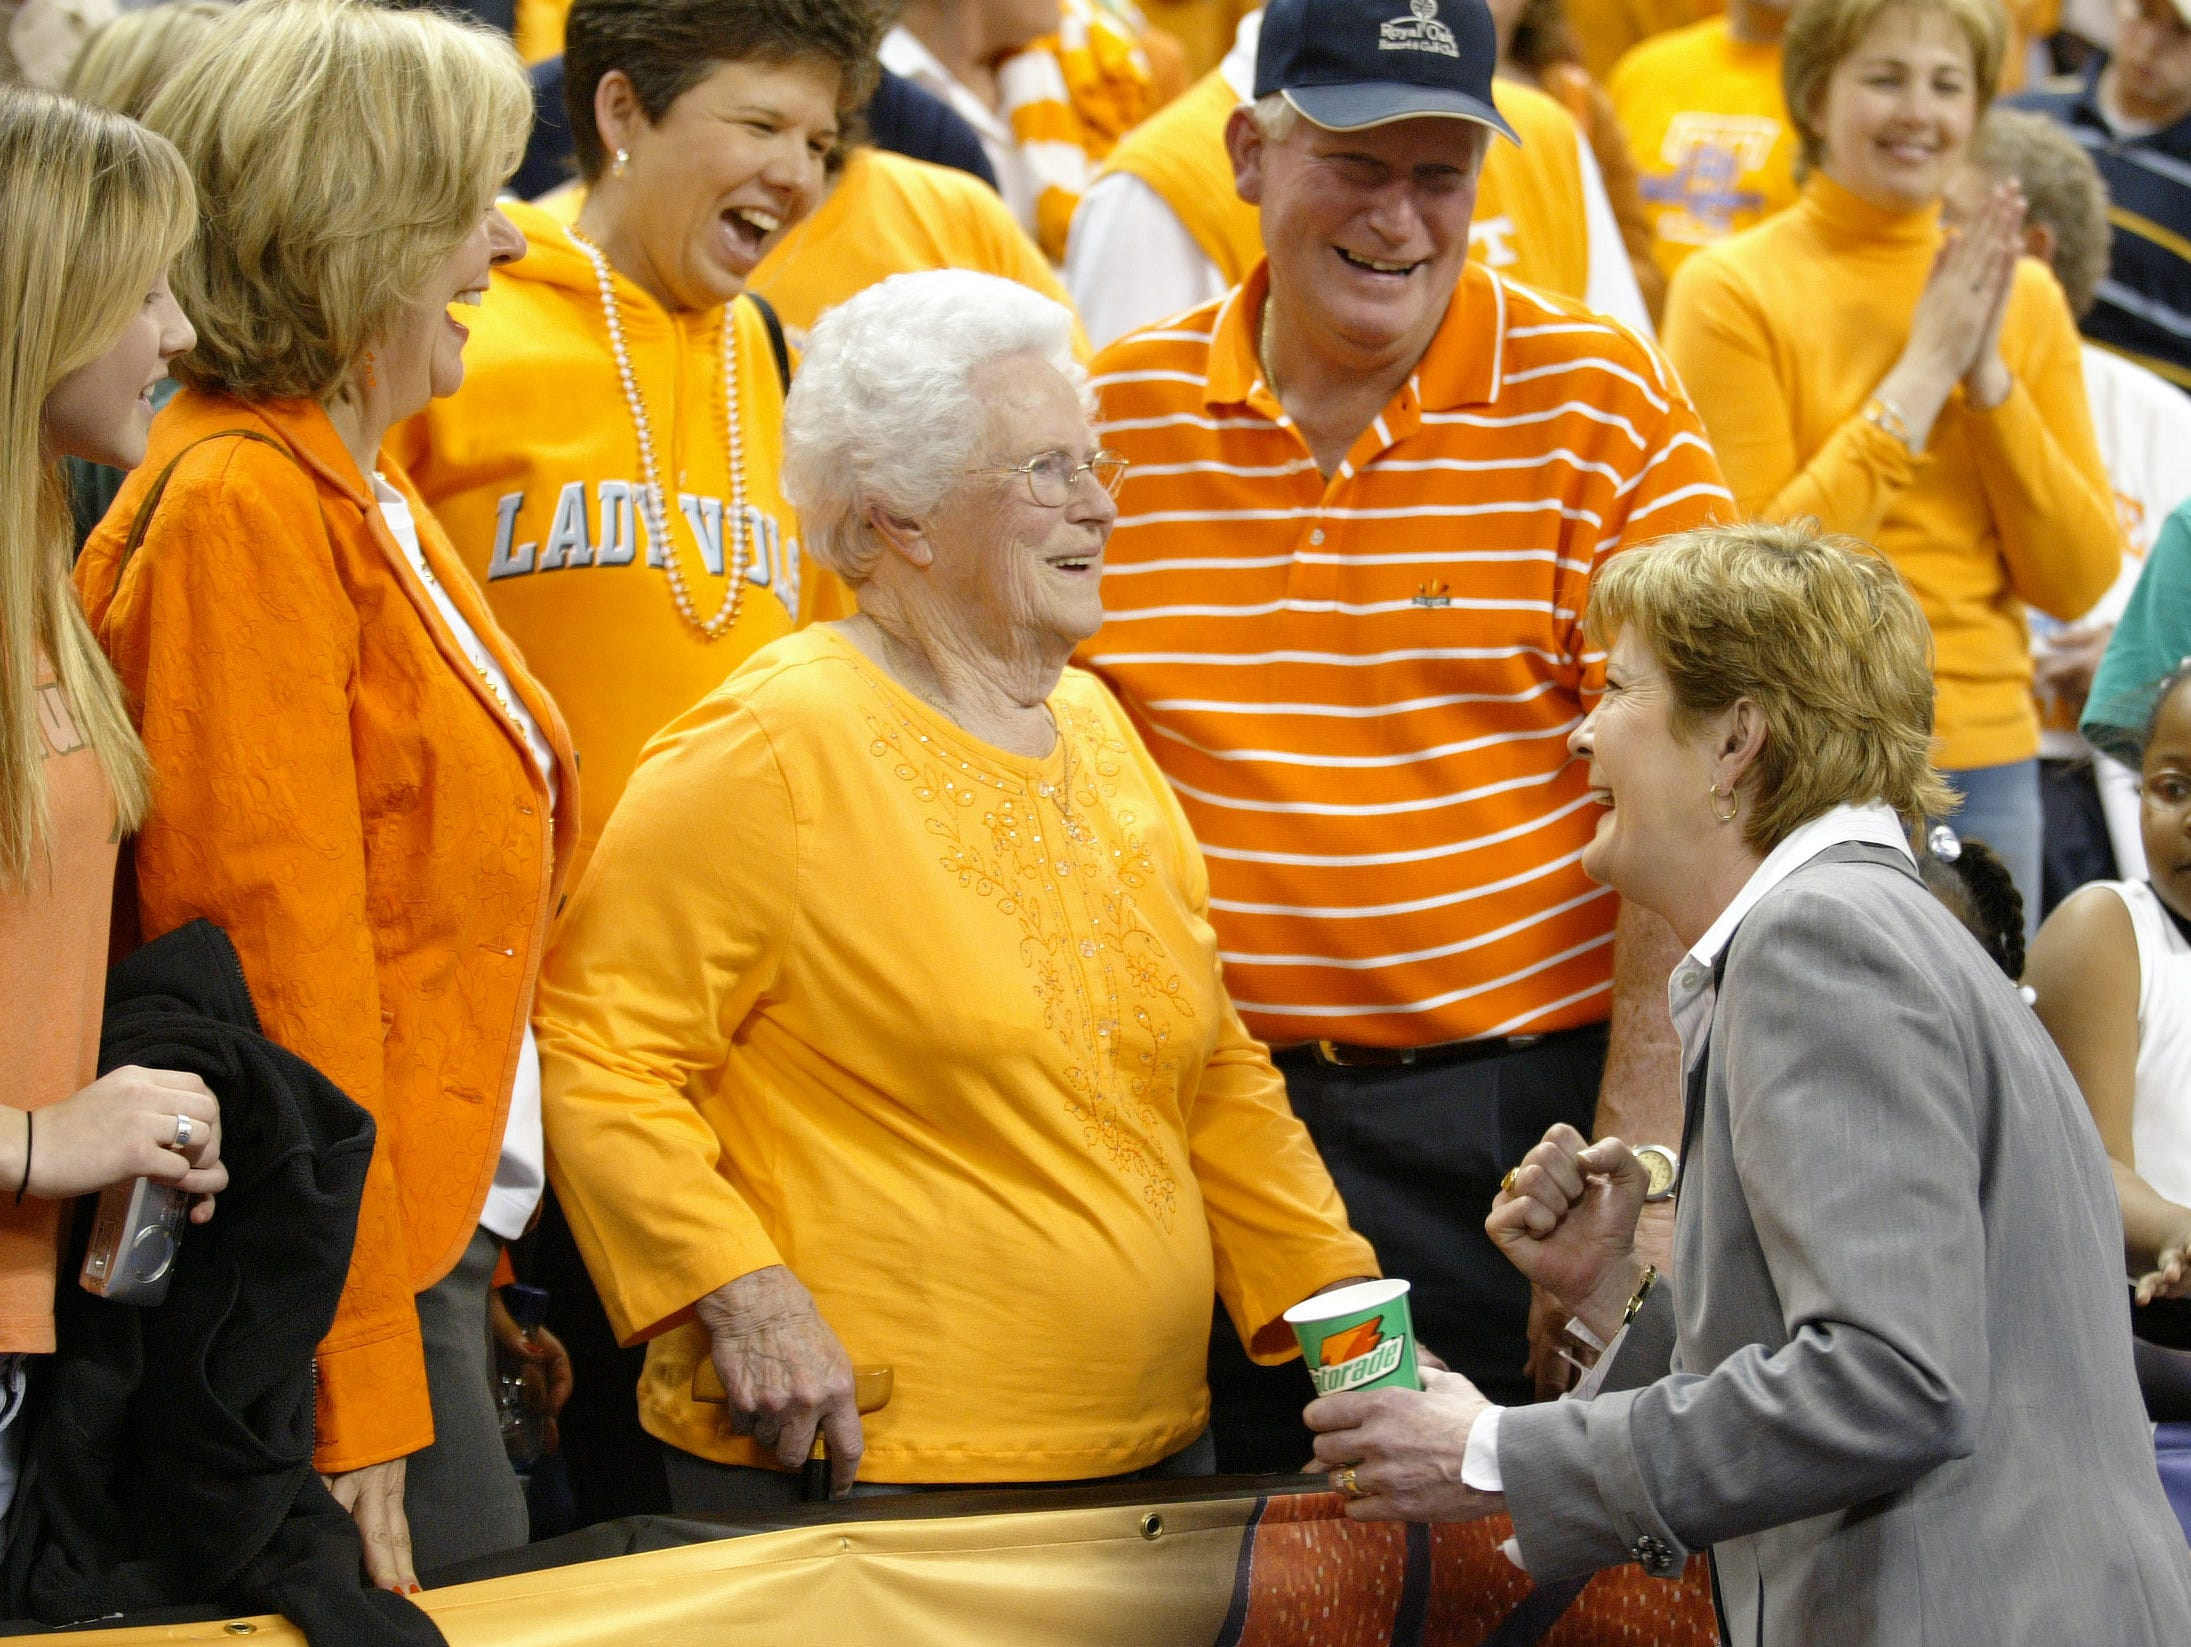 Pat Summitt celebrates with her mother, Hazel Head, after the Lady Vols defeated LSU in the SEC championship game on March 5, 2006 in Little Rock, Ark. Also pictured are her brother Kenneth Head and a friend, Margaret Carter, left, wearing orange jacket.